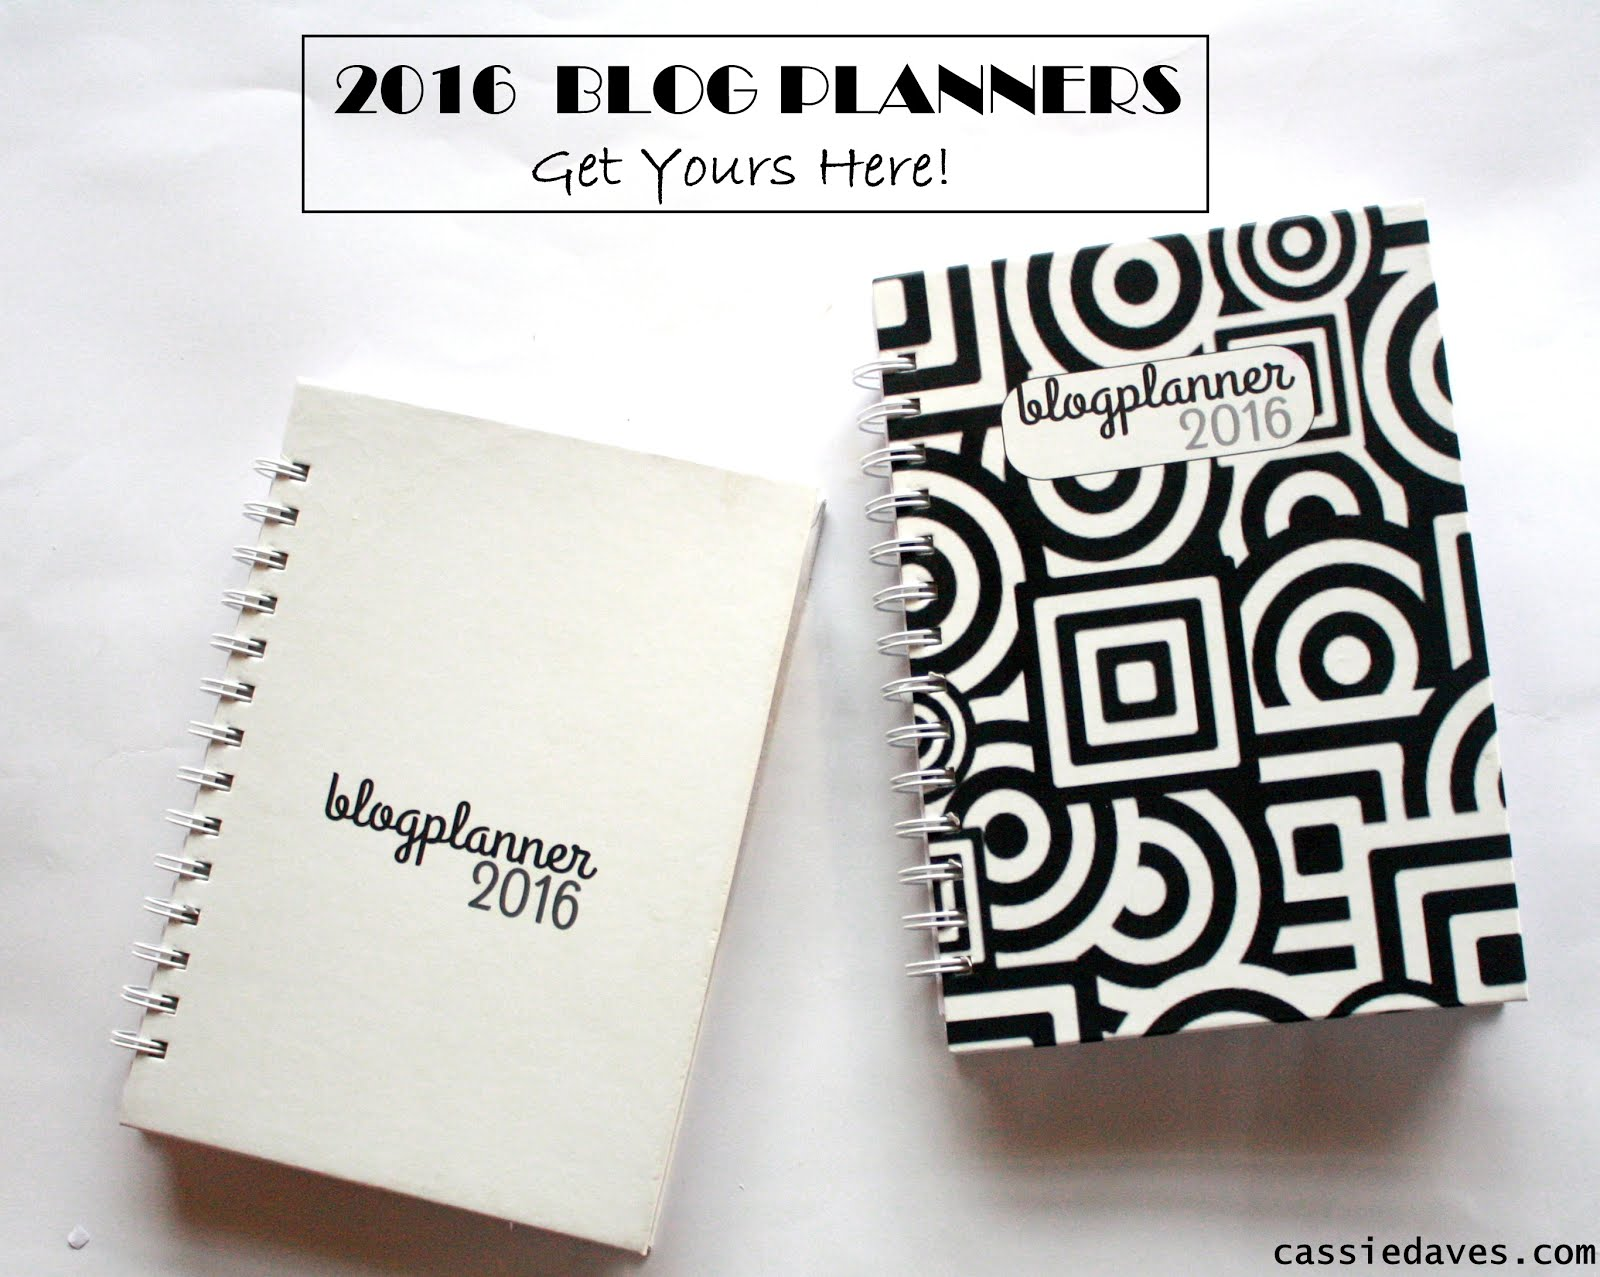 The One Tool For Your Best Blog Year Ever!